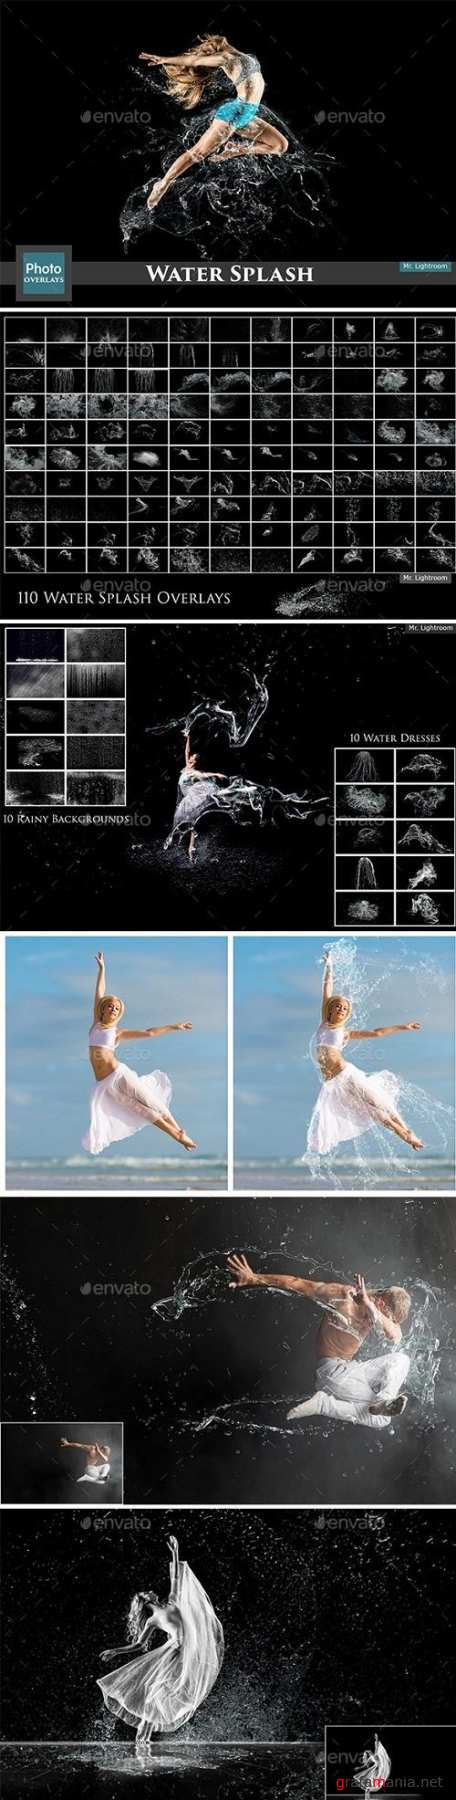 130 Water Splash Photo Overlays - 60 - Colorful Powder Explosion Overlays  - 26117723 - 4667763